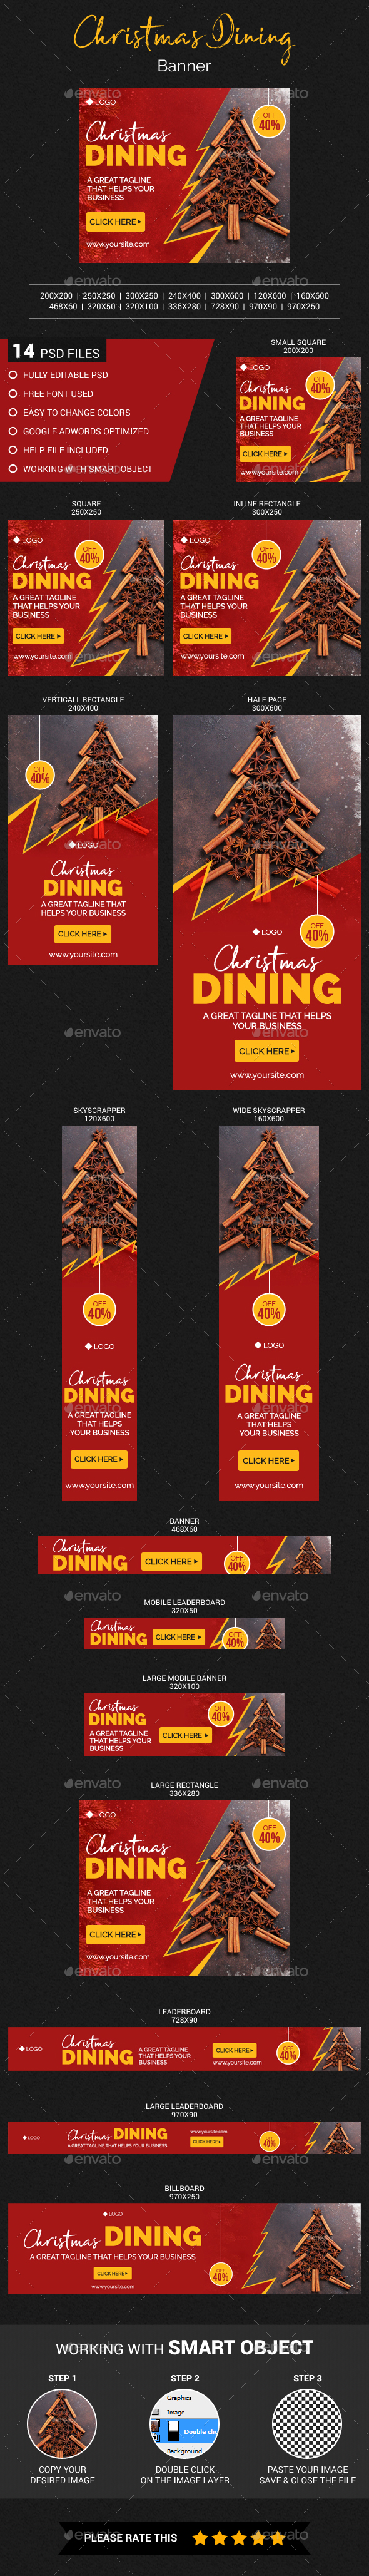 Christmas Dining Banner - Banners & Ads Web Elements